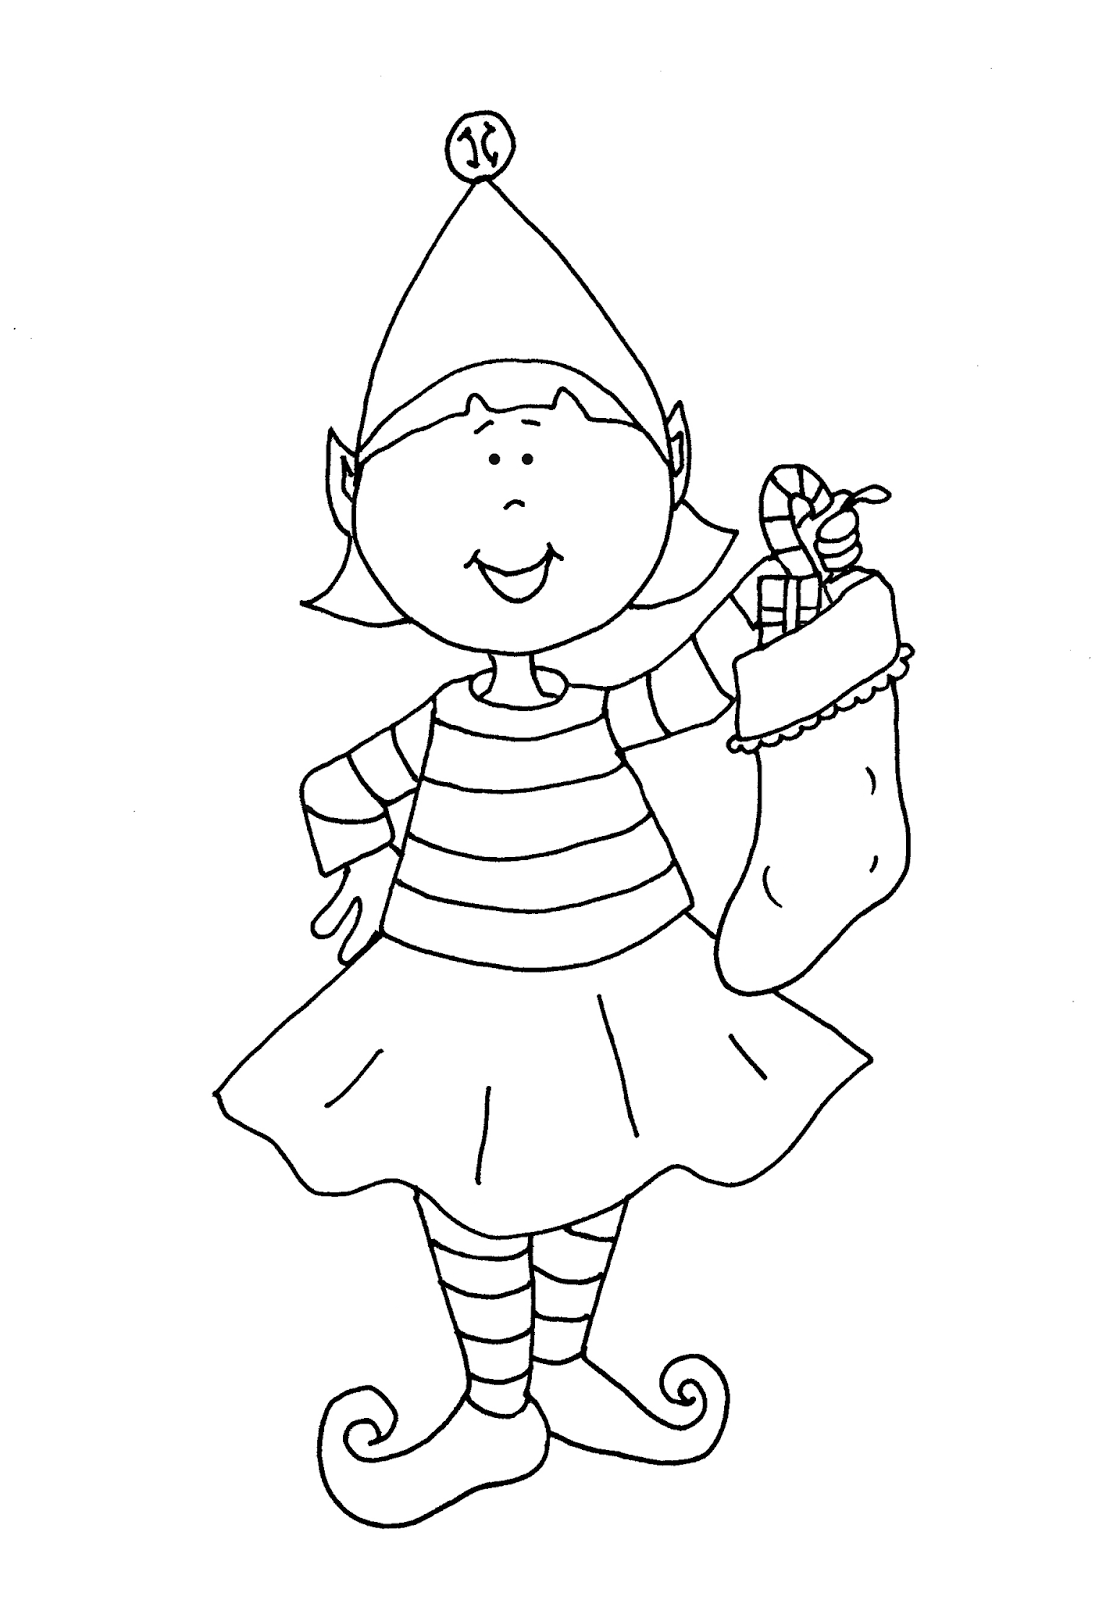 coloring pages of elfes - photo#38